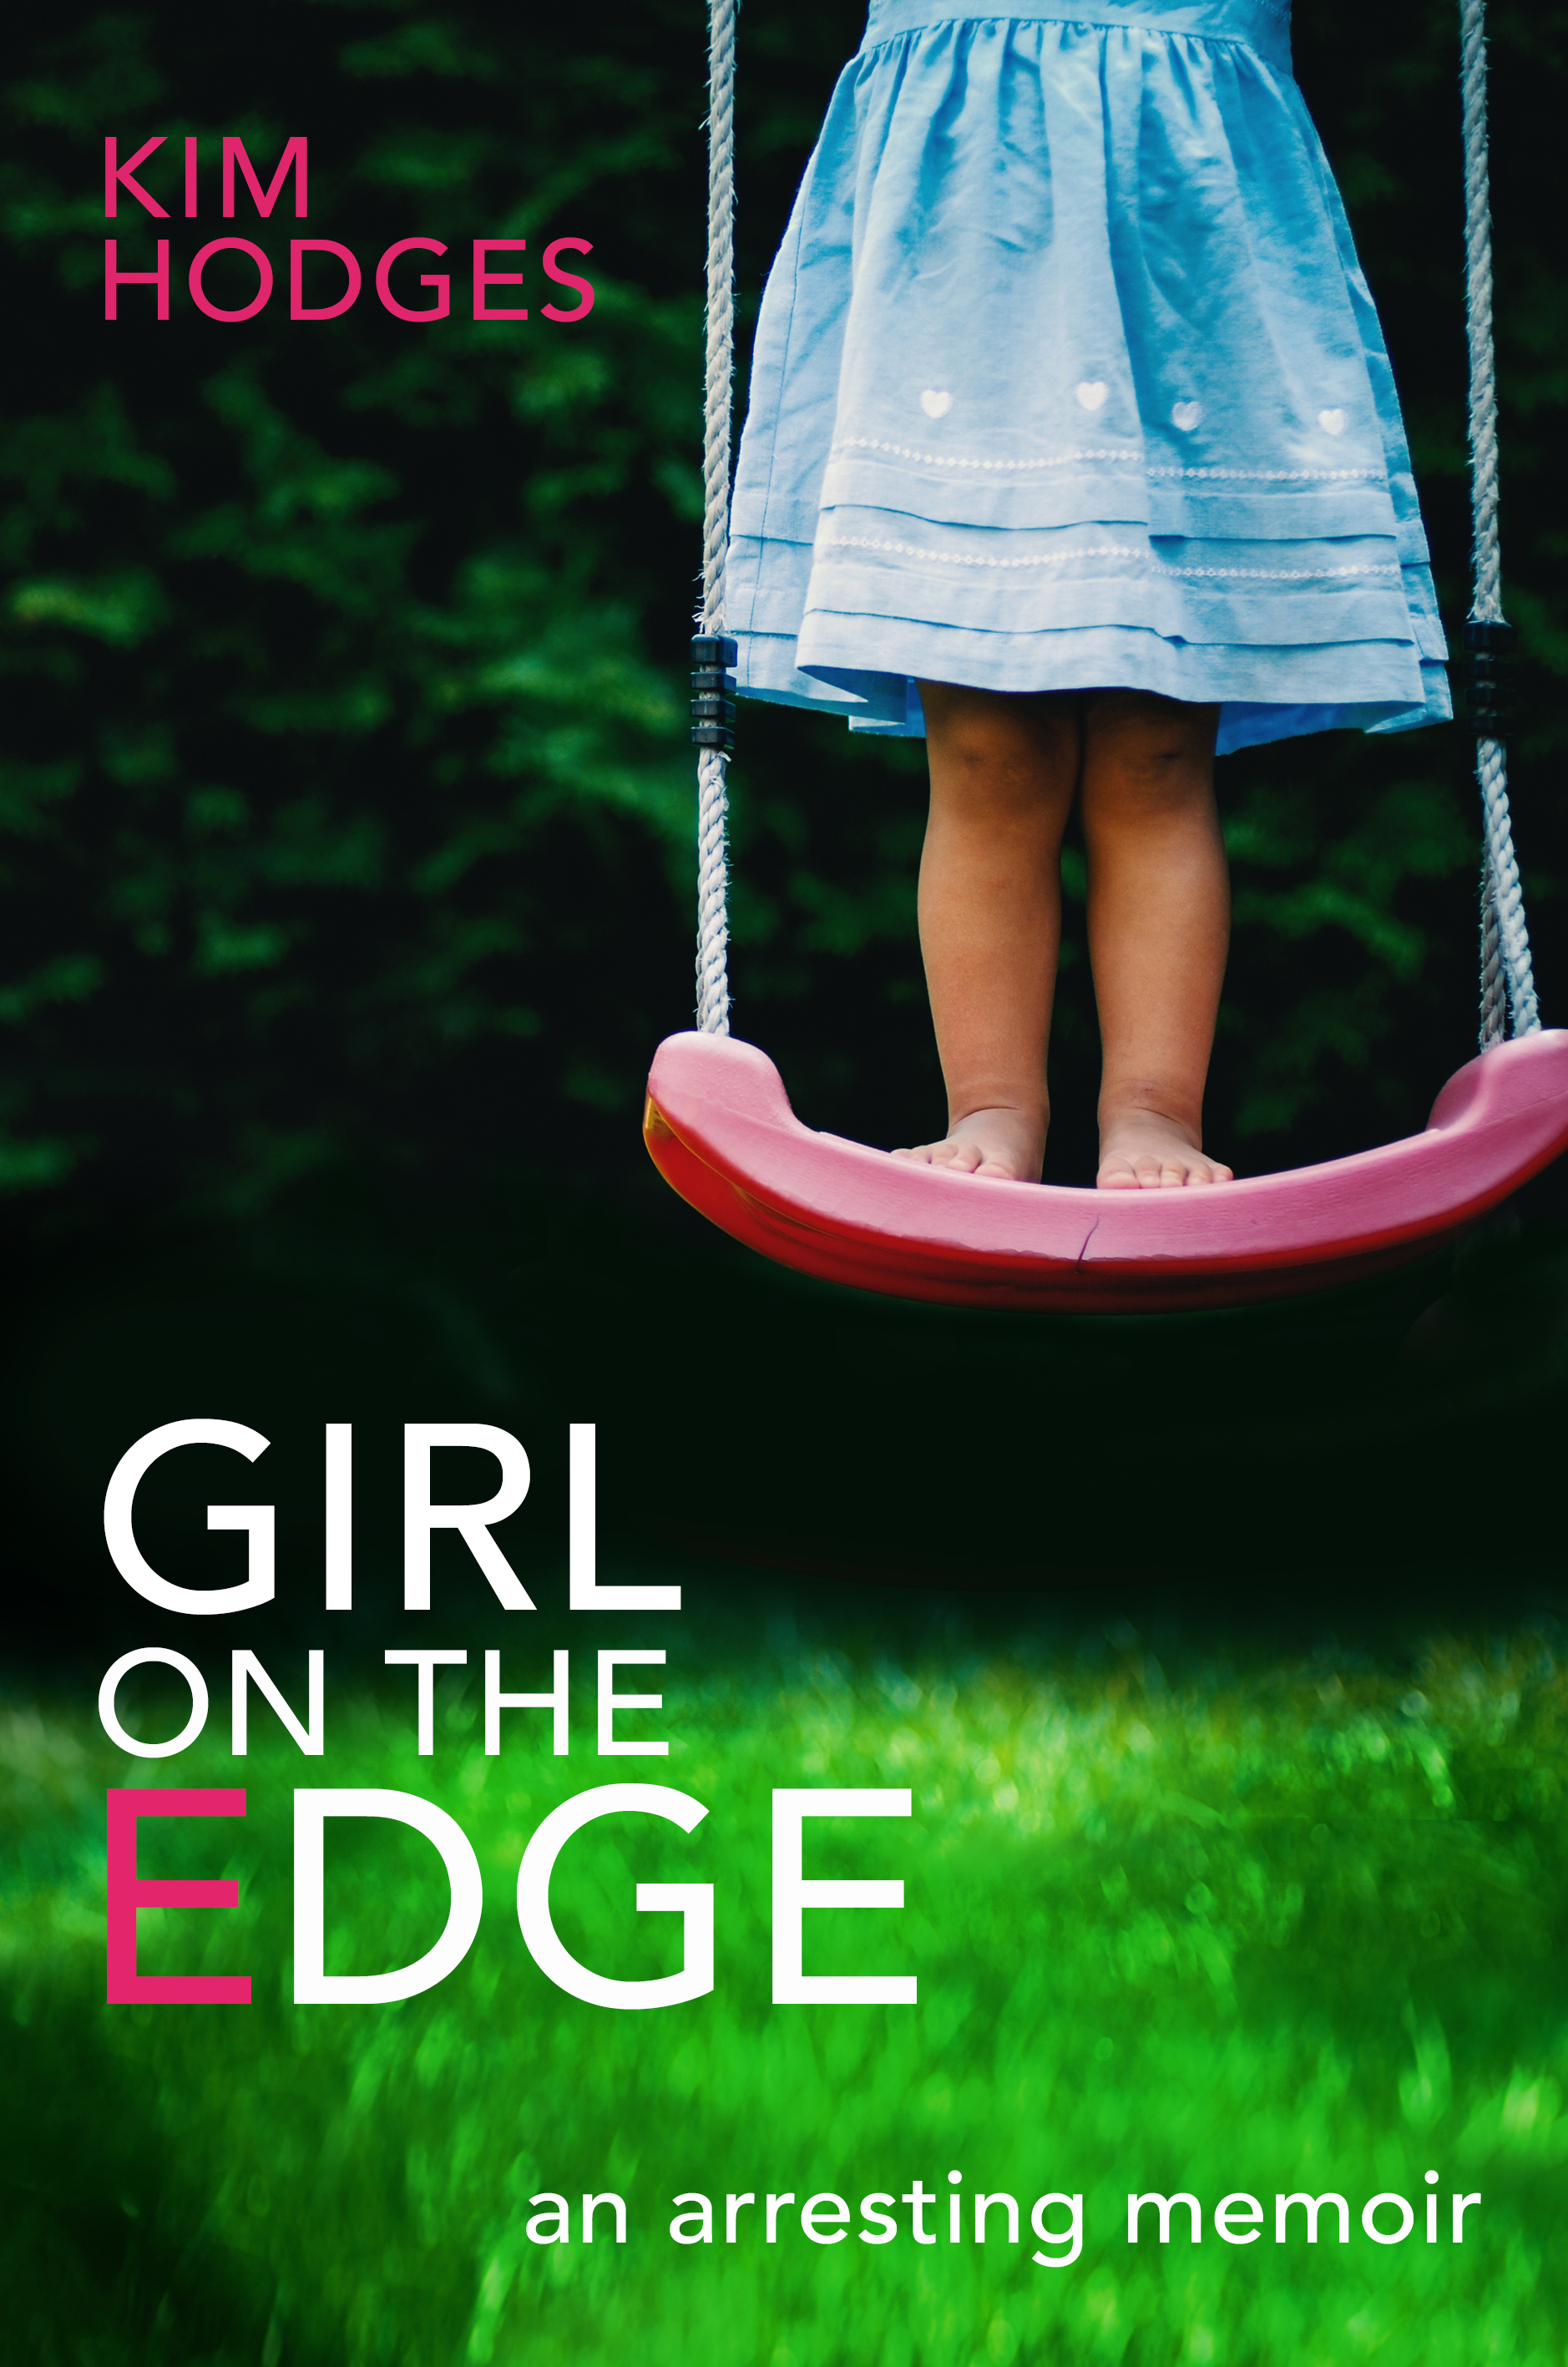 girl on the edge final.jpeg